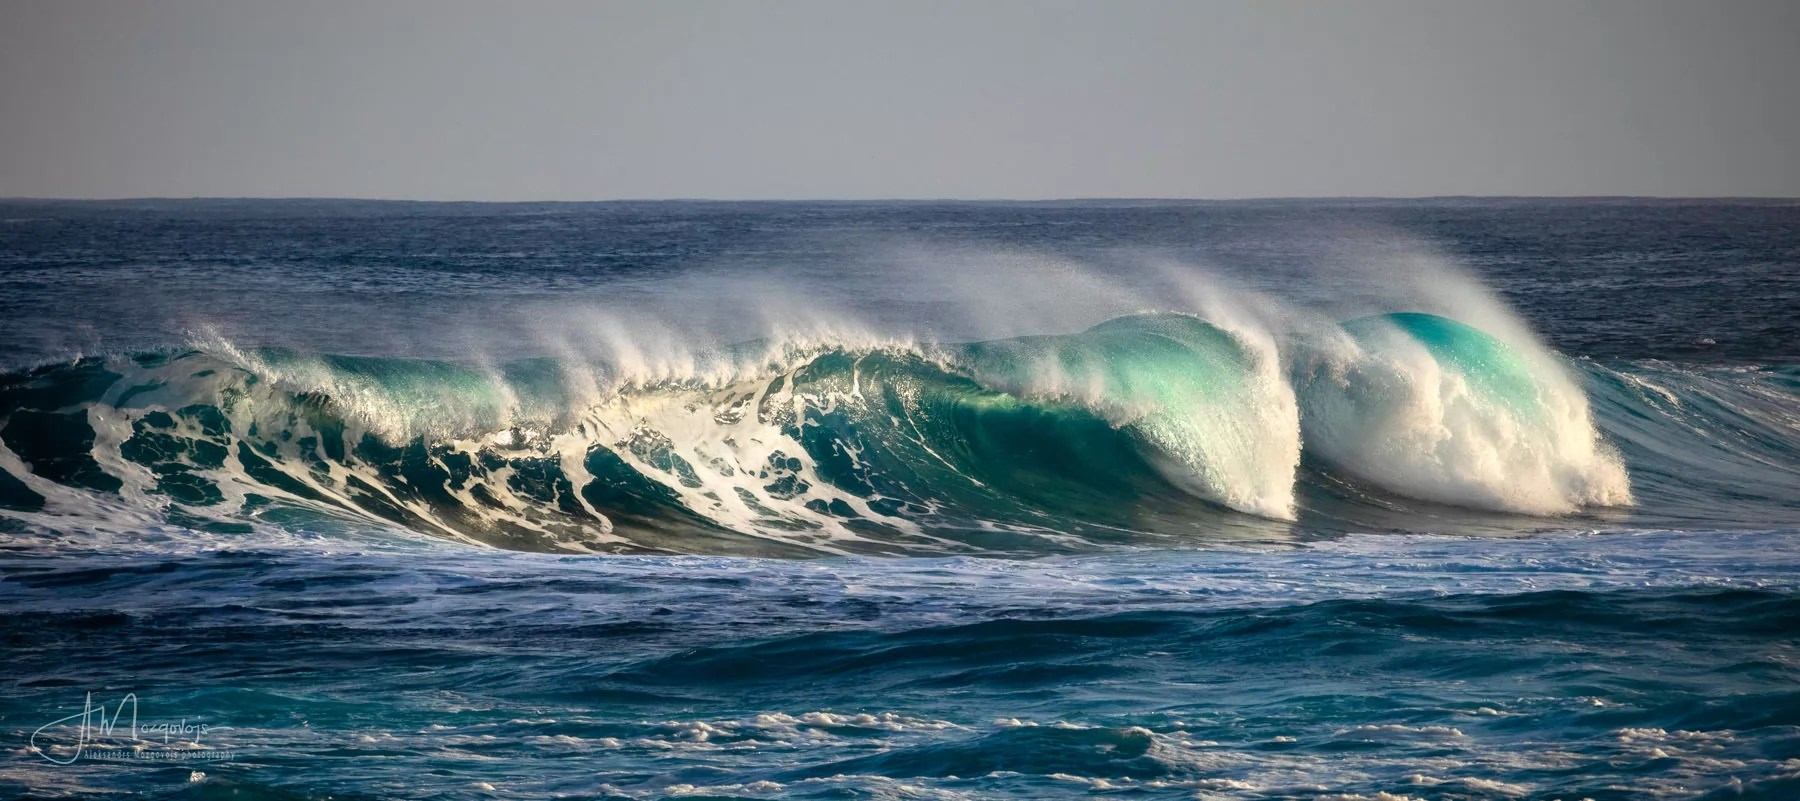 Morning waves on Punta del Hidalgo